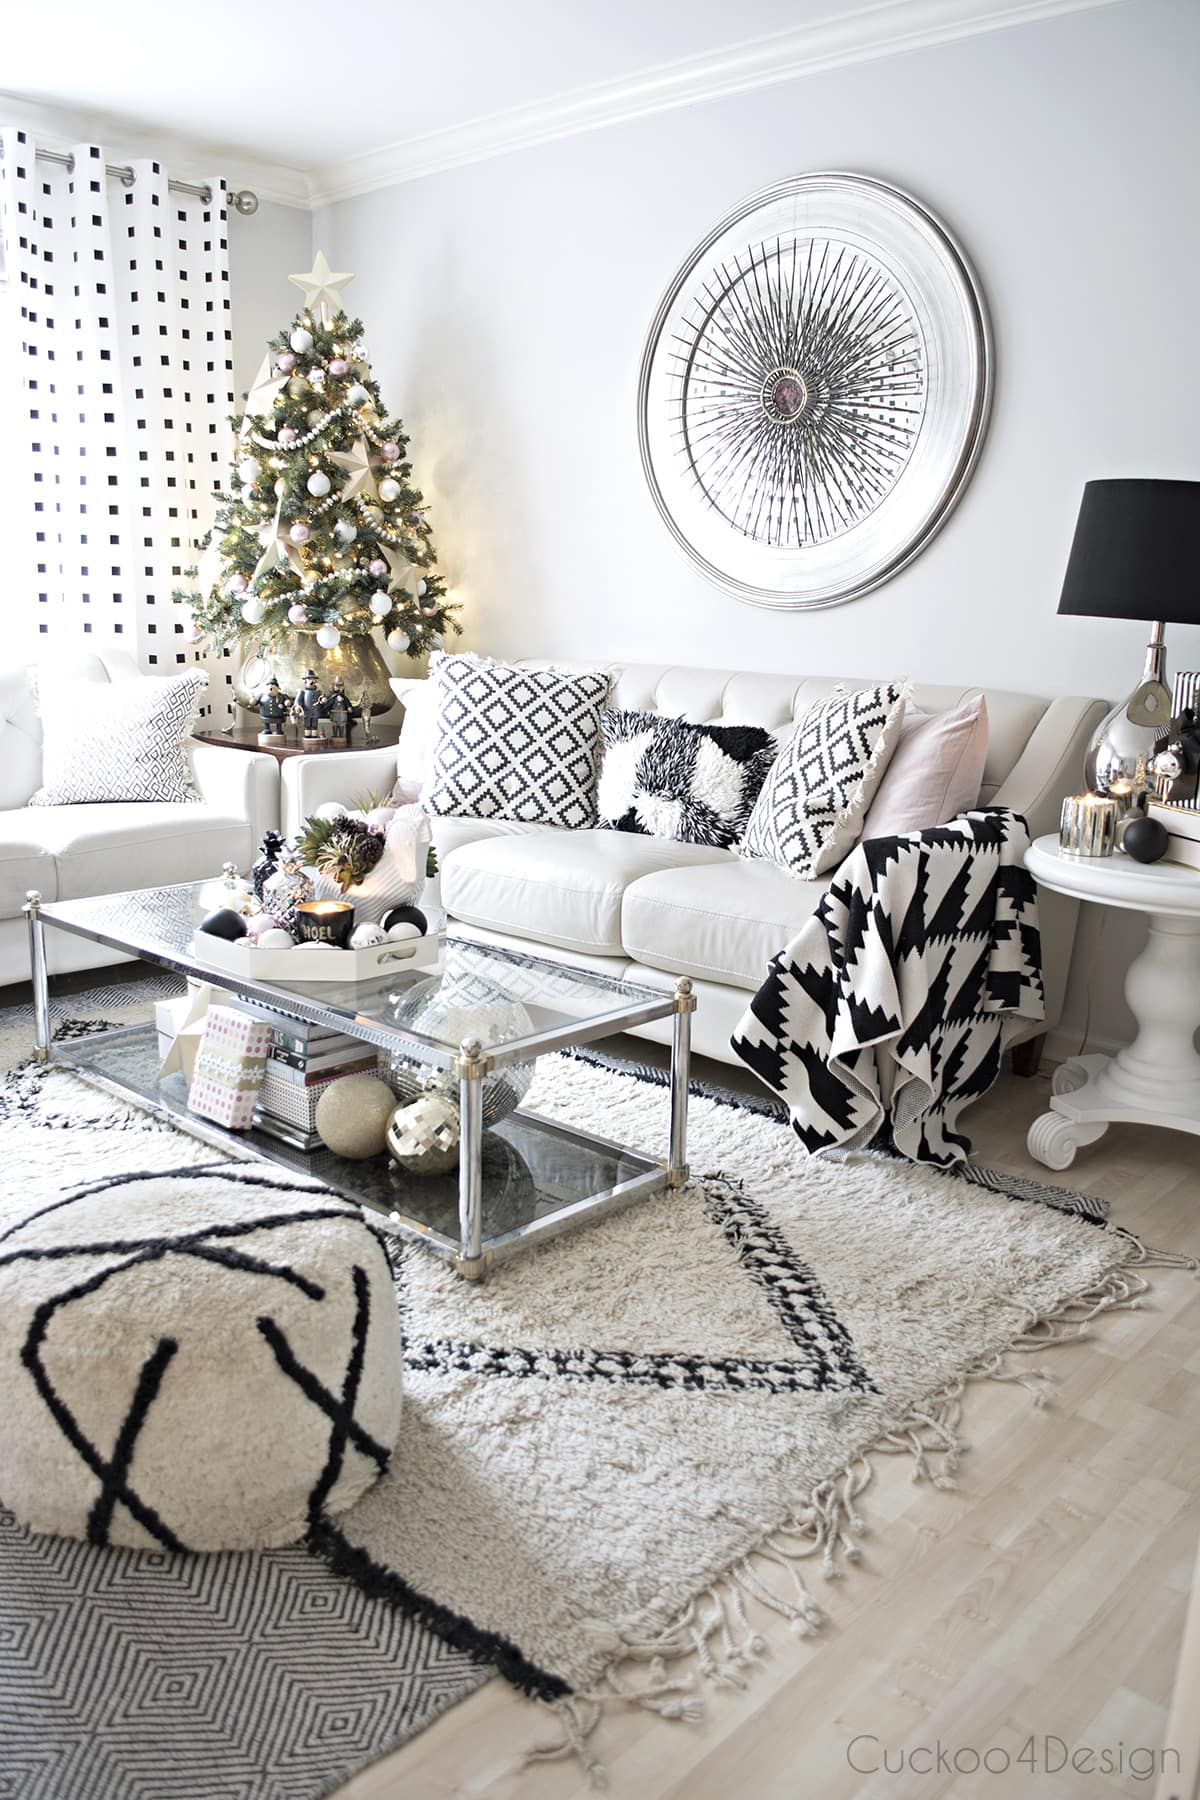 beautiful bohemian eclectic living room with black and white accents, mixed metallics and blush accents | vintage Curtis Jere burst over mirror | Beni Ourrain | small Christmas tree | black and white flat weave area rug